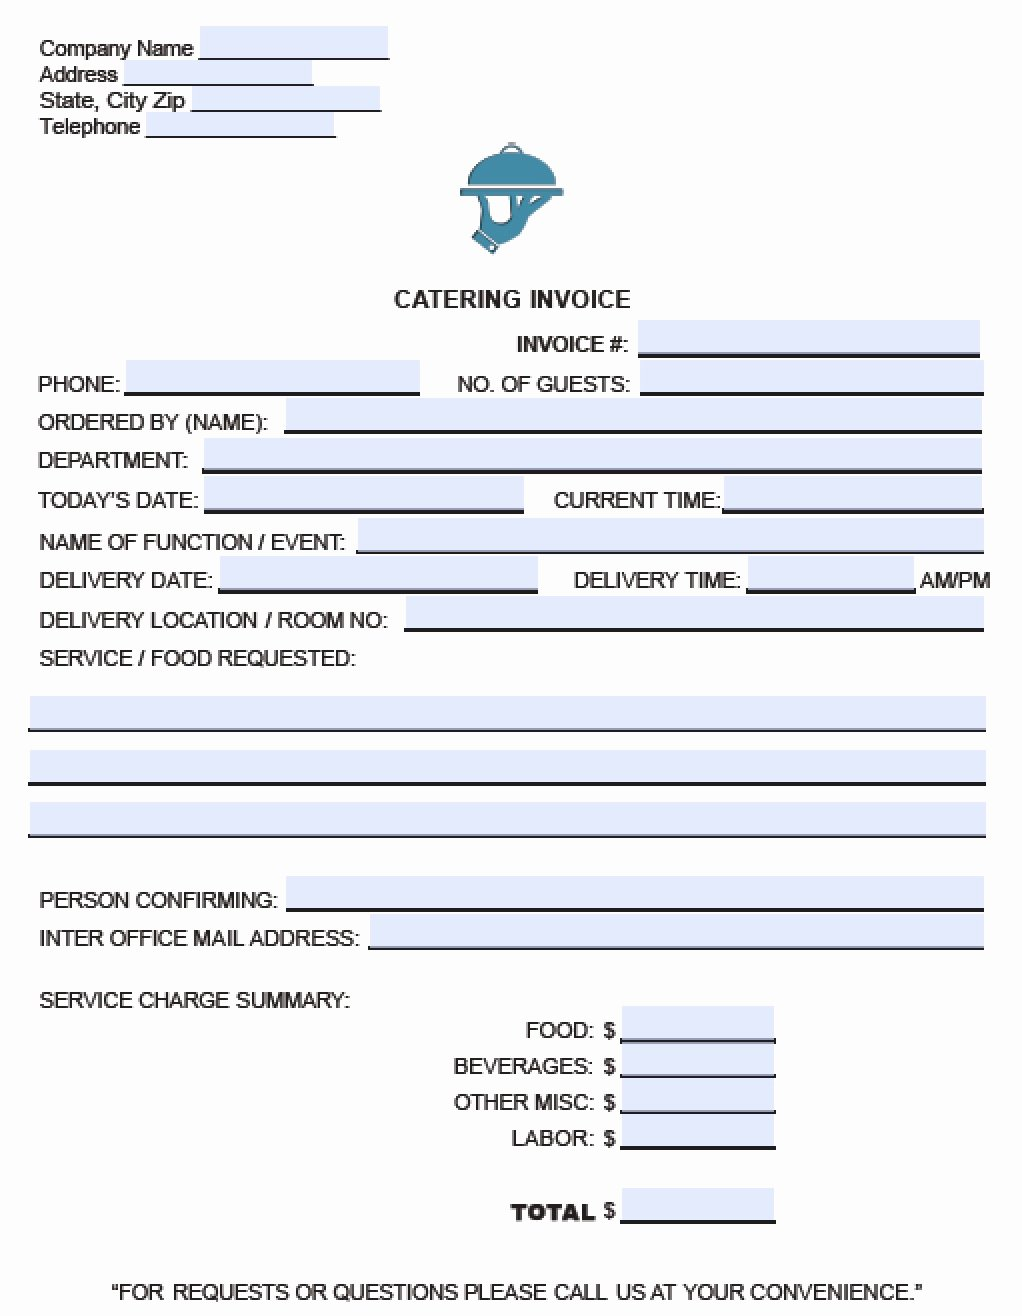 Catering order form Template Free Fresh Free Catering Service Invoice Template Excel